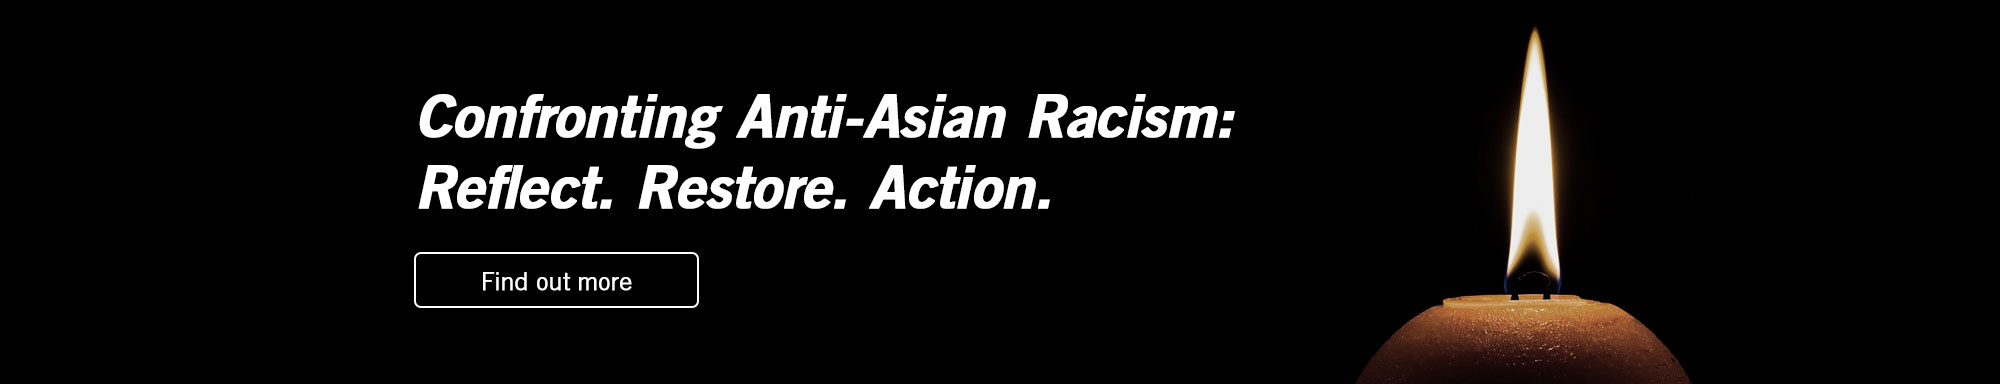 Lear more about Confronting Anti-Asian Racism